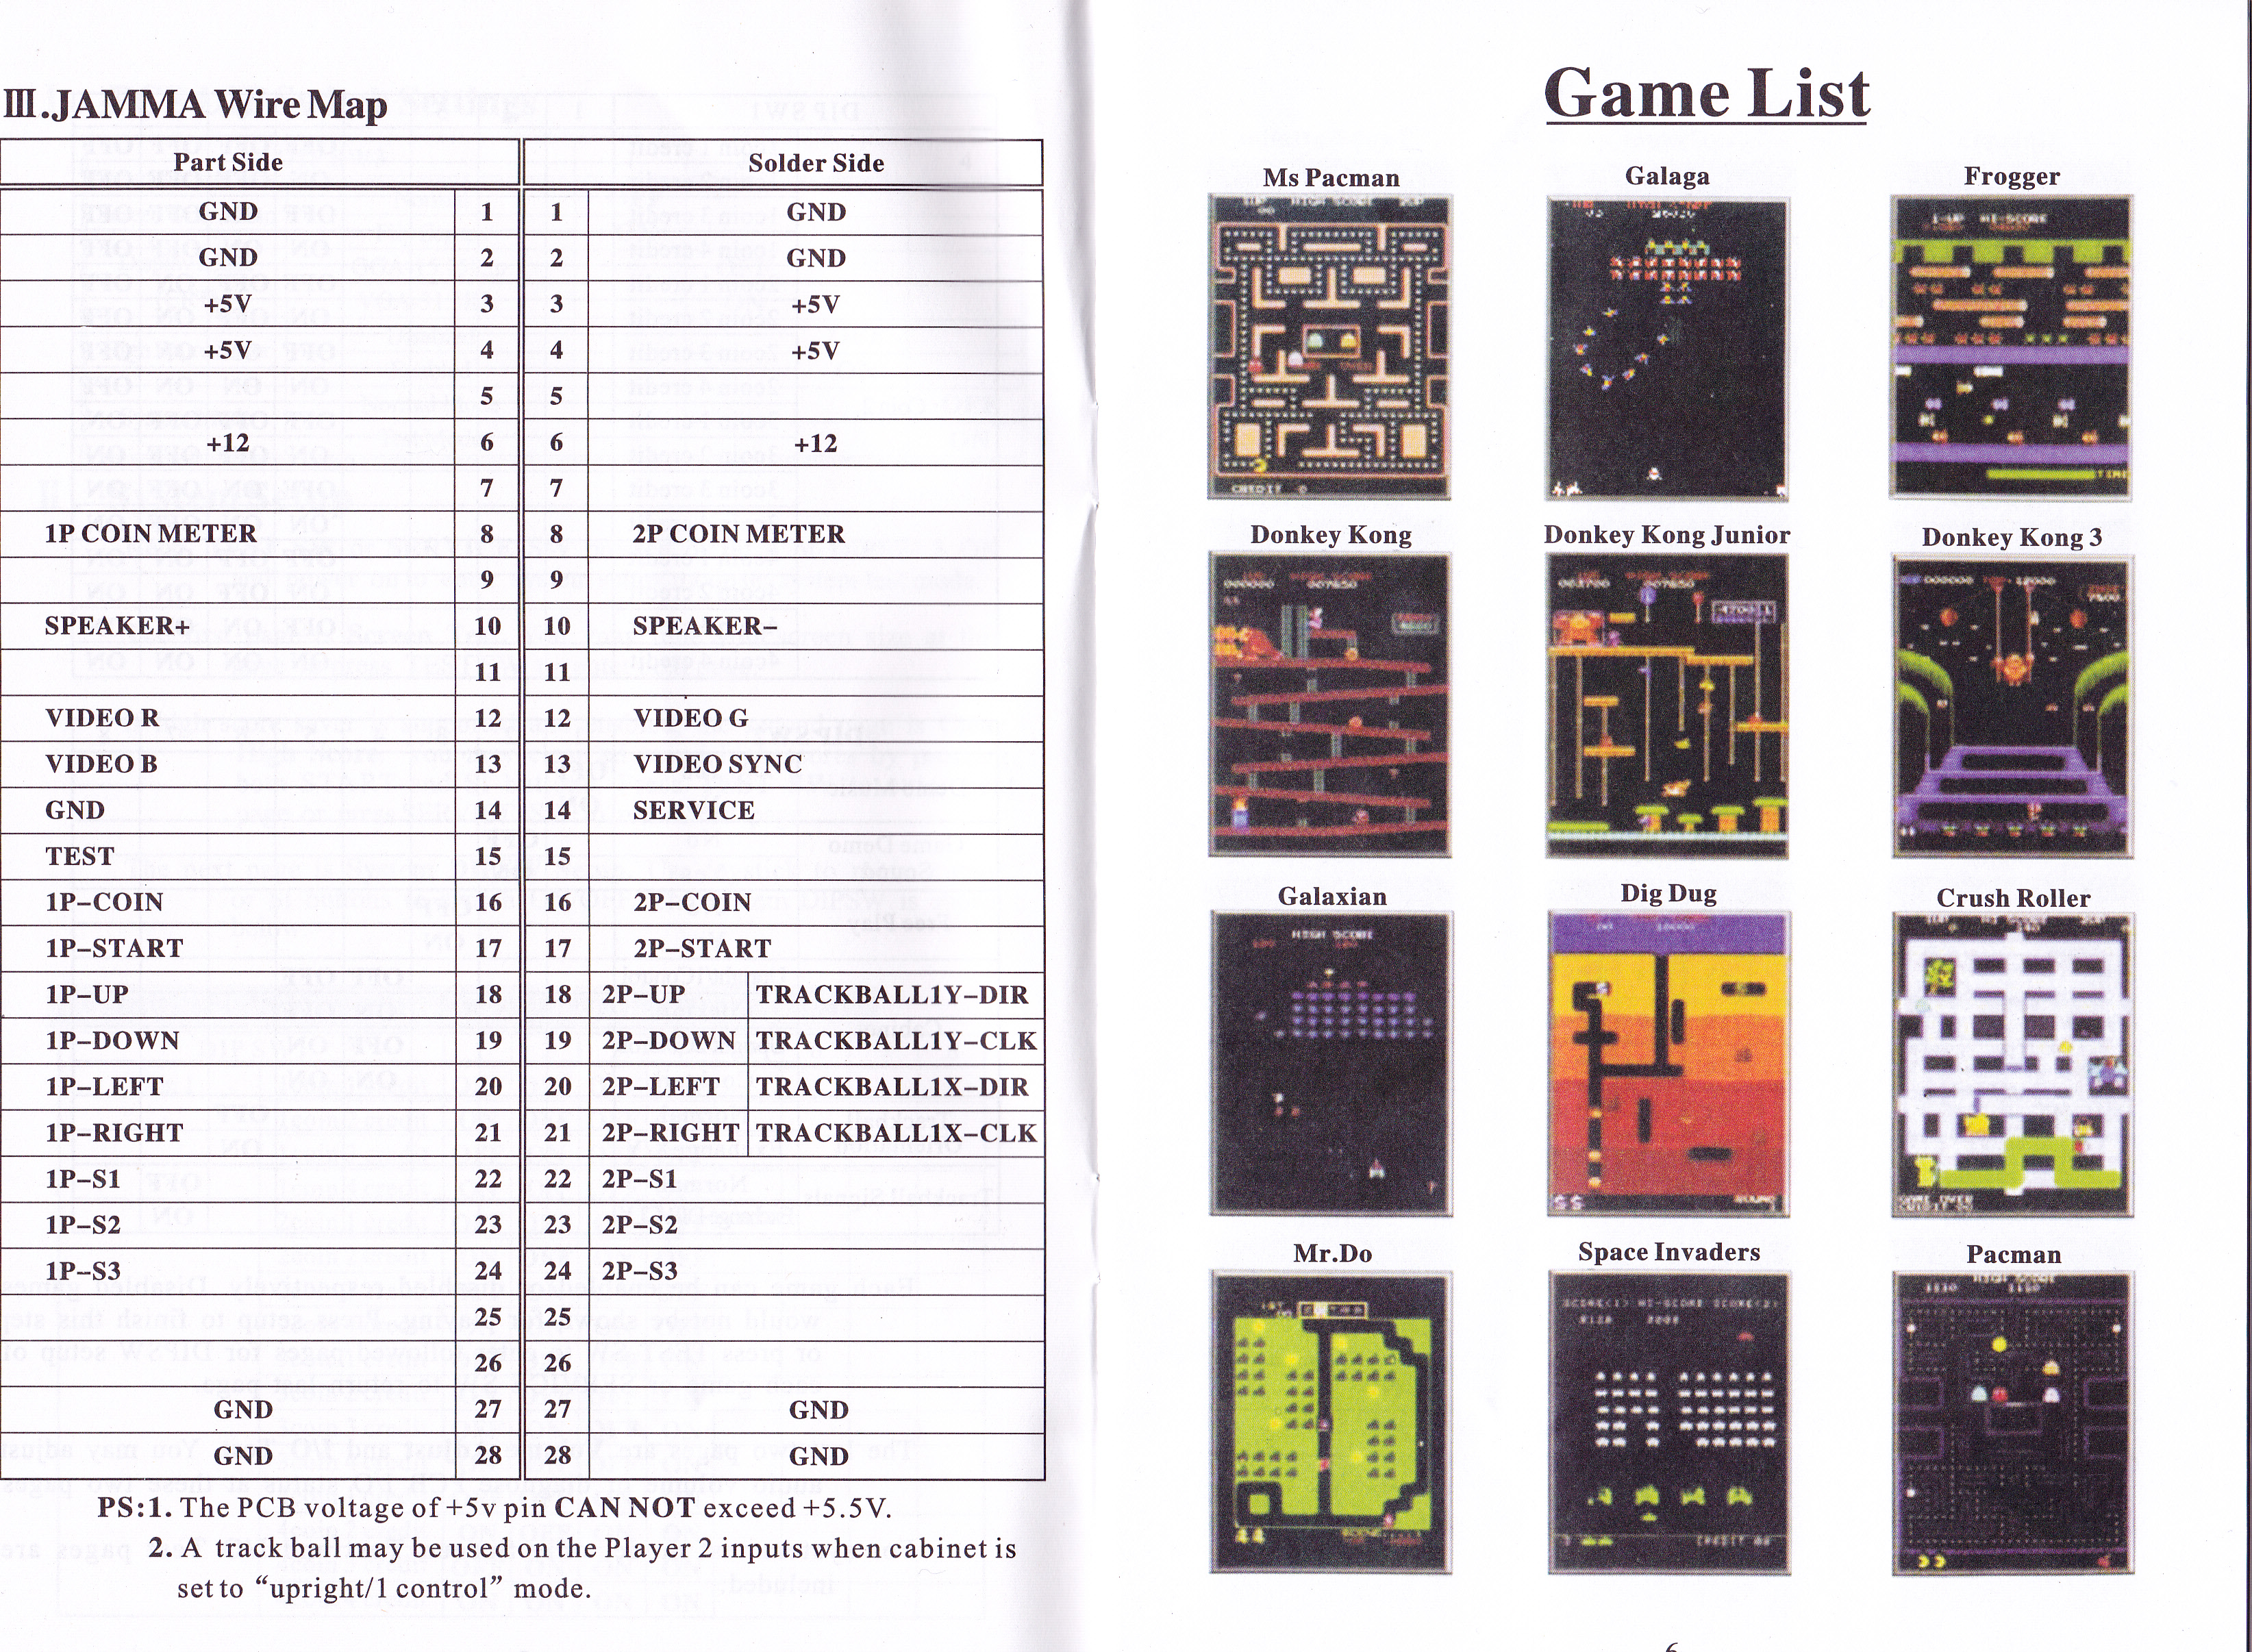 Icade 60-in-1 multicade system, games list, and manual.